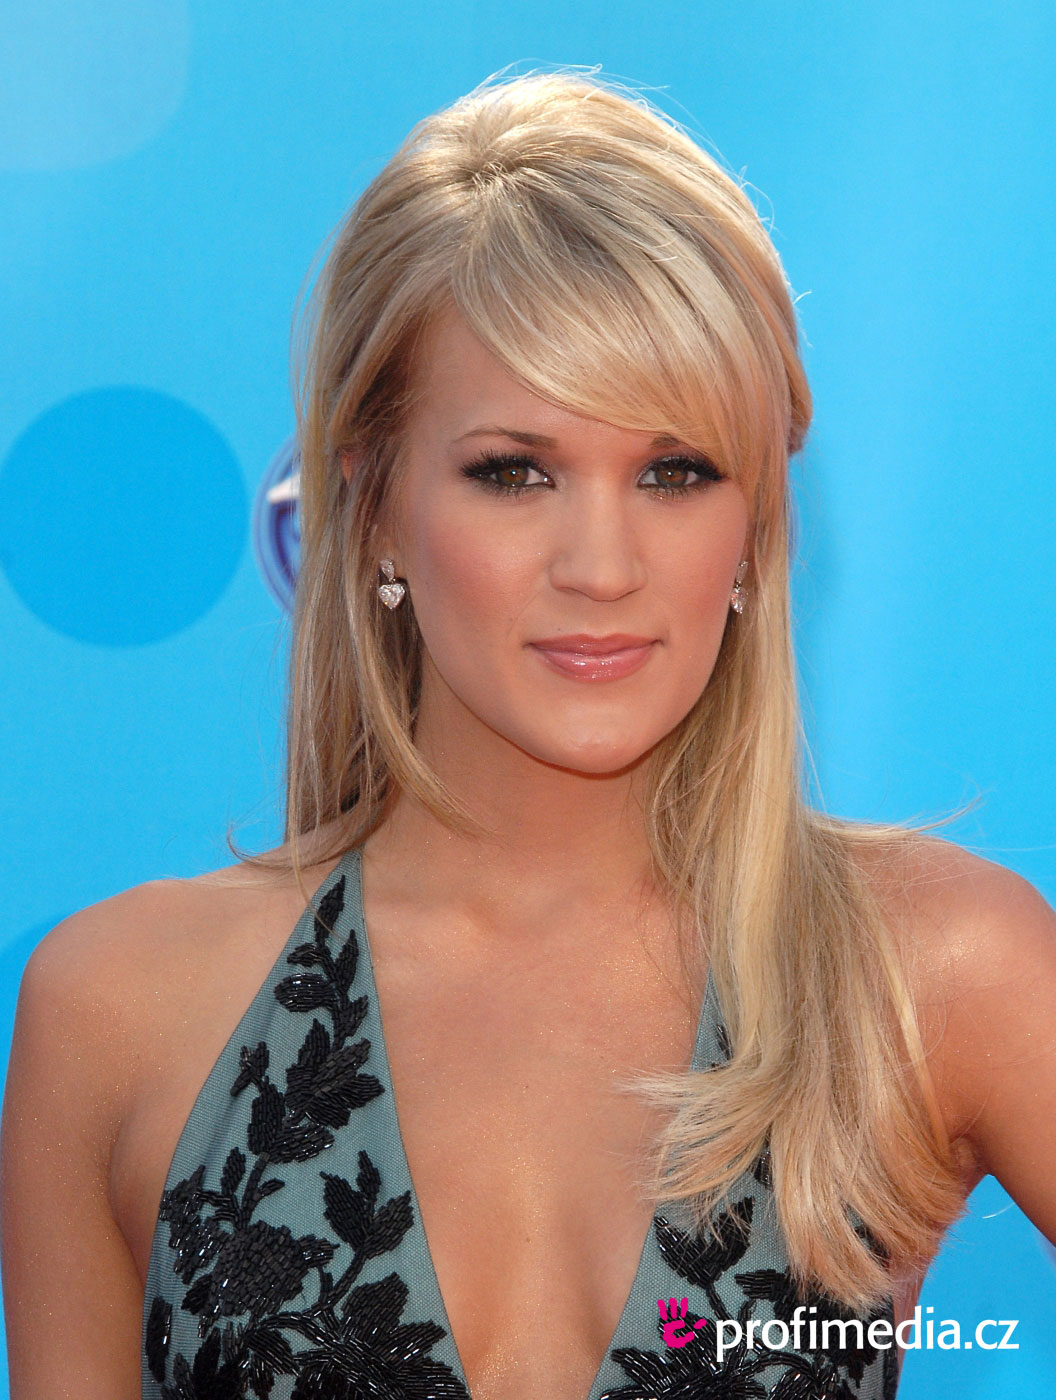 Carrie underwood hairstyle easyhairstyler you can try this carrie underwoods hairstyle with your own photo upload at easyhairstyler urmus Image collections